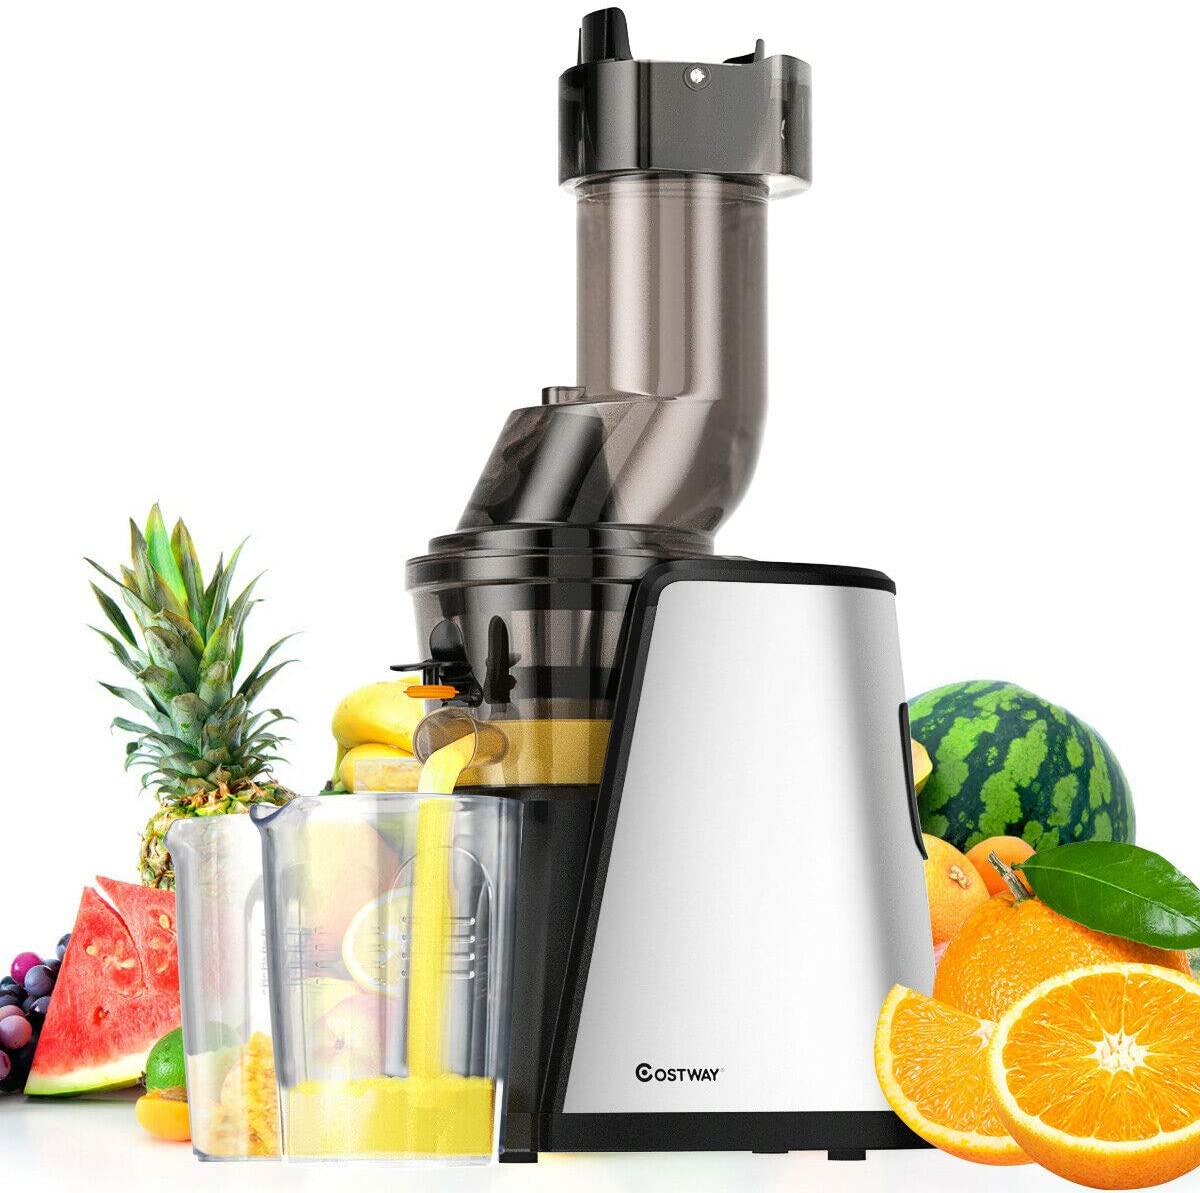 COSTWAY Slow Juicer Masticating Machine with 3.4 inch Wide Chute, Stainless Steel Juicer Extractor with Cold Press Masticating Squeezer Technology,